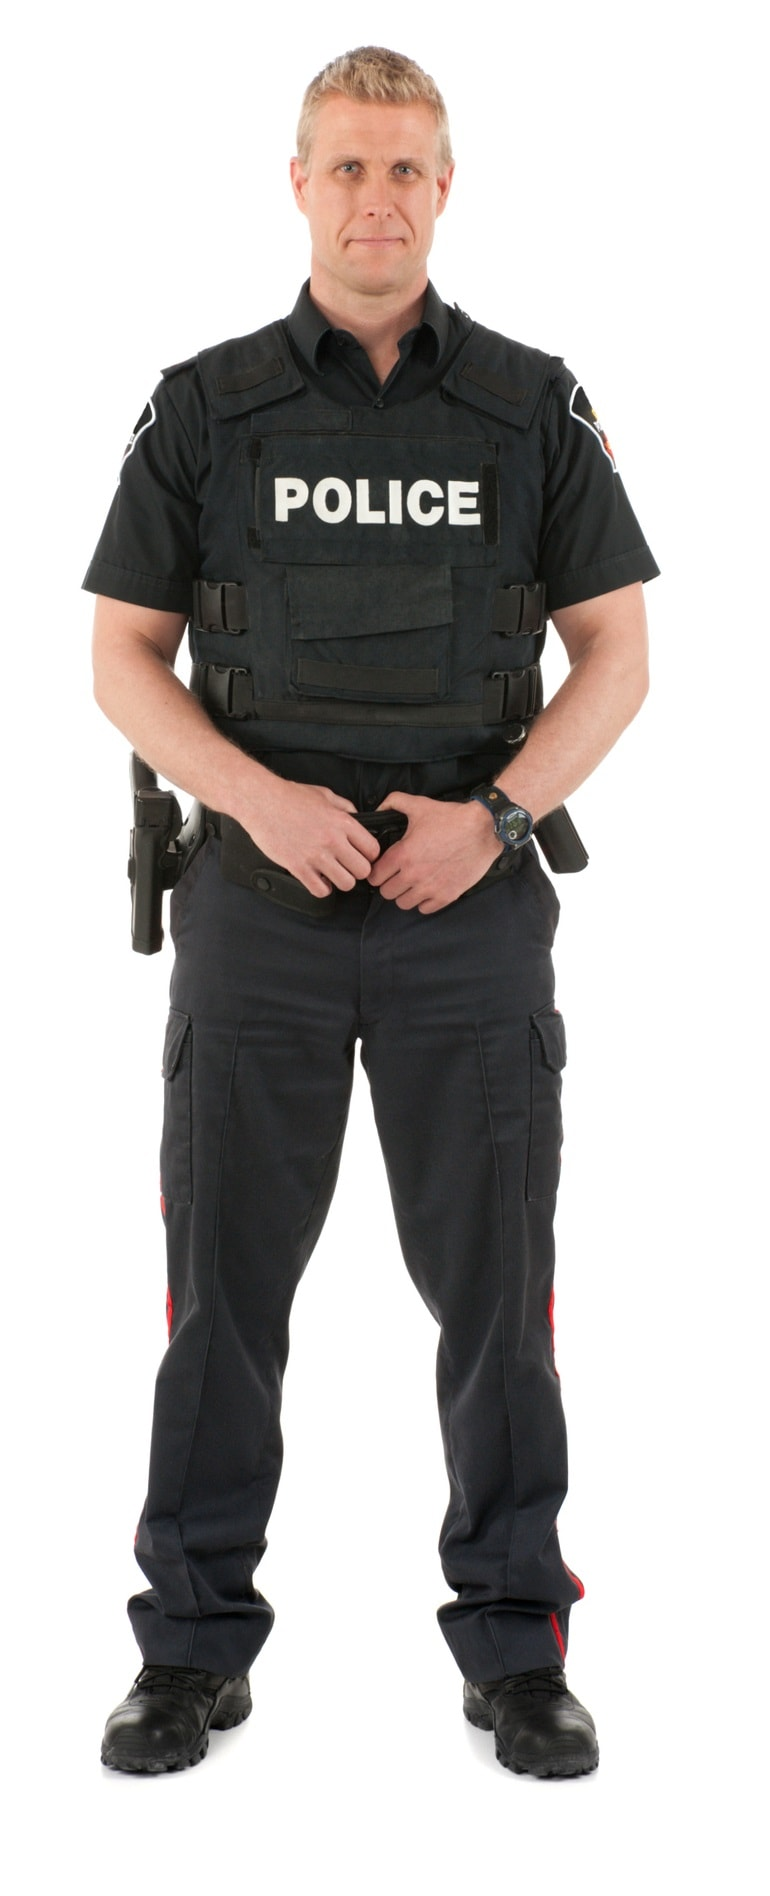 Liability Insurance for Police Officers